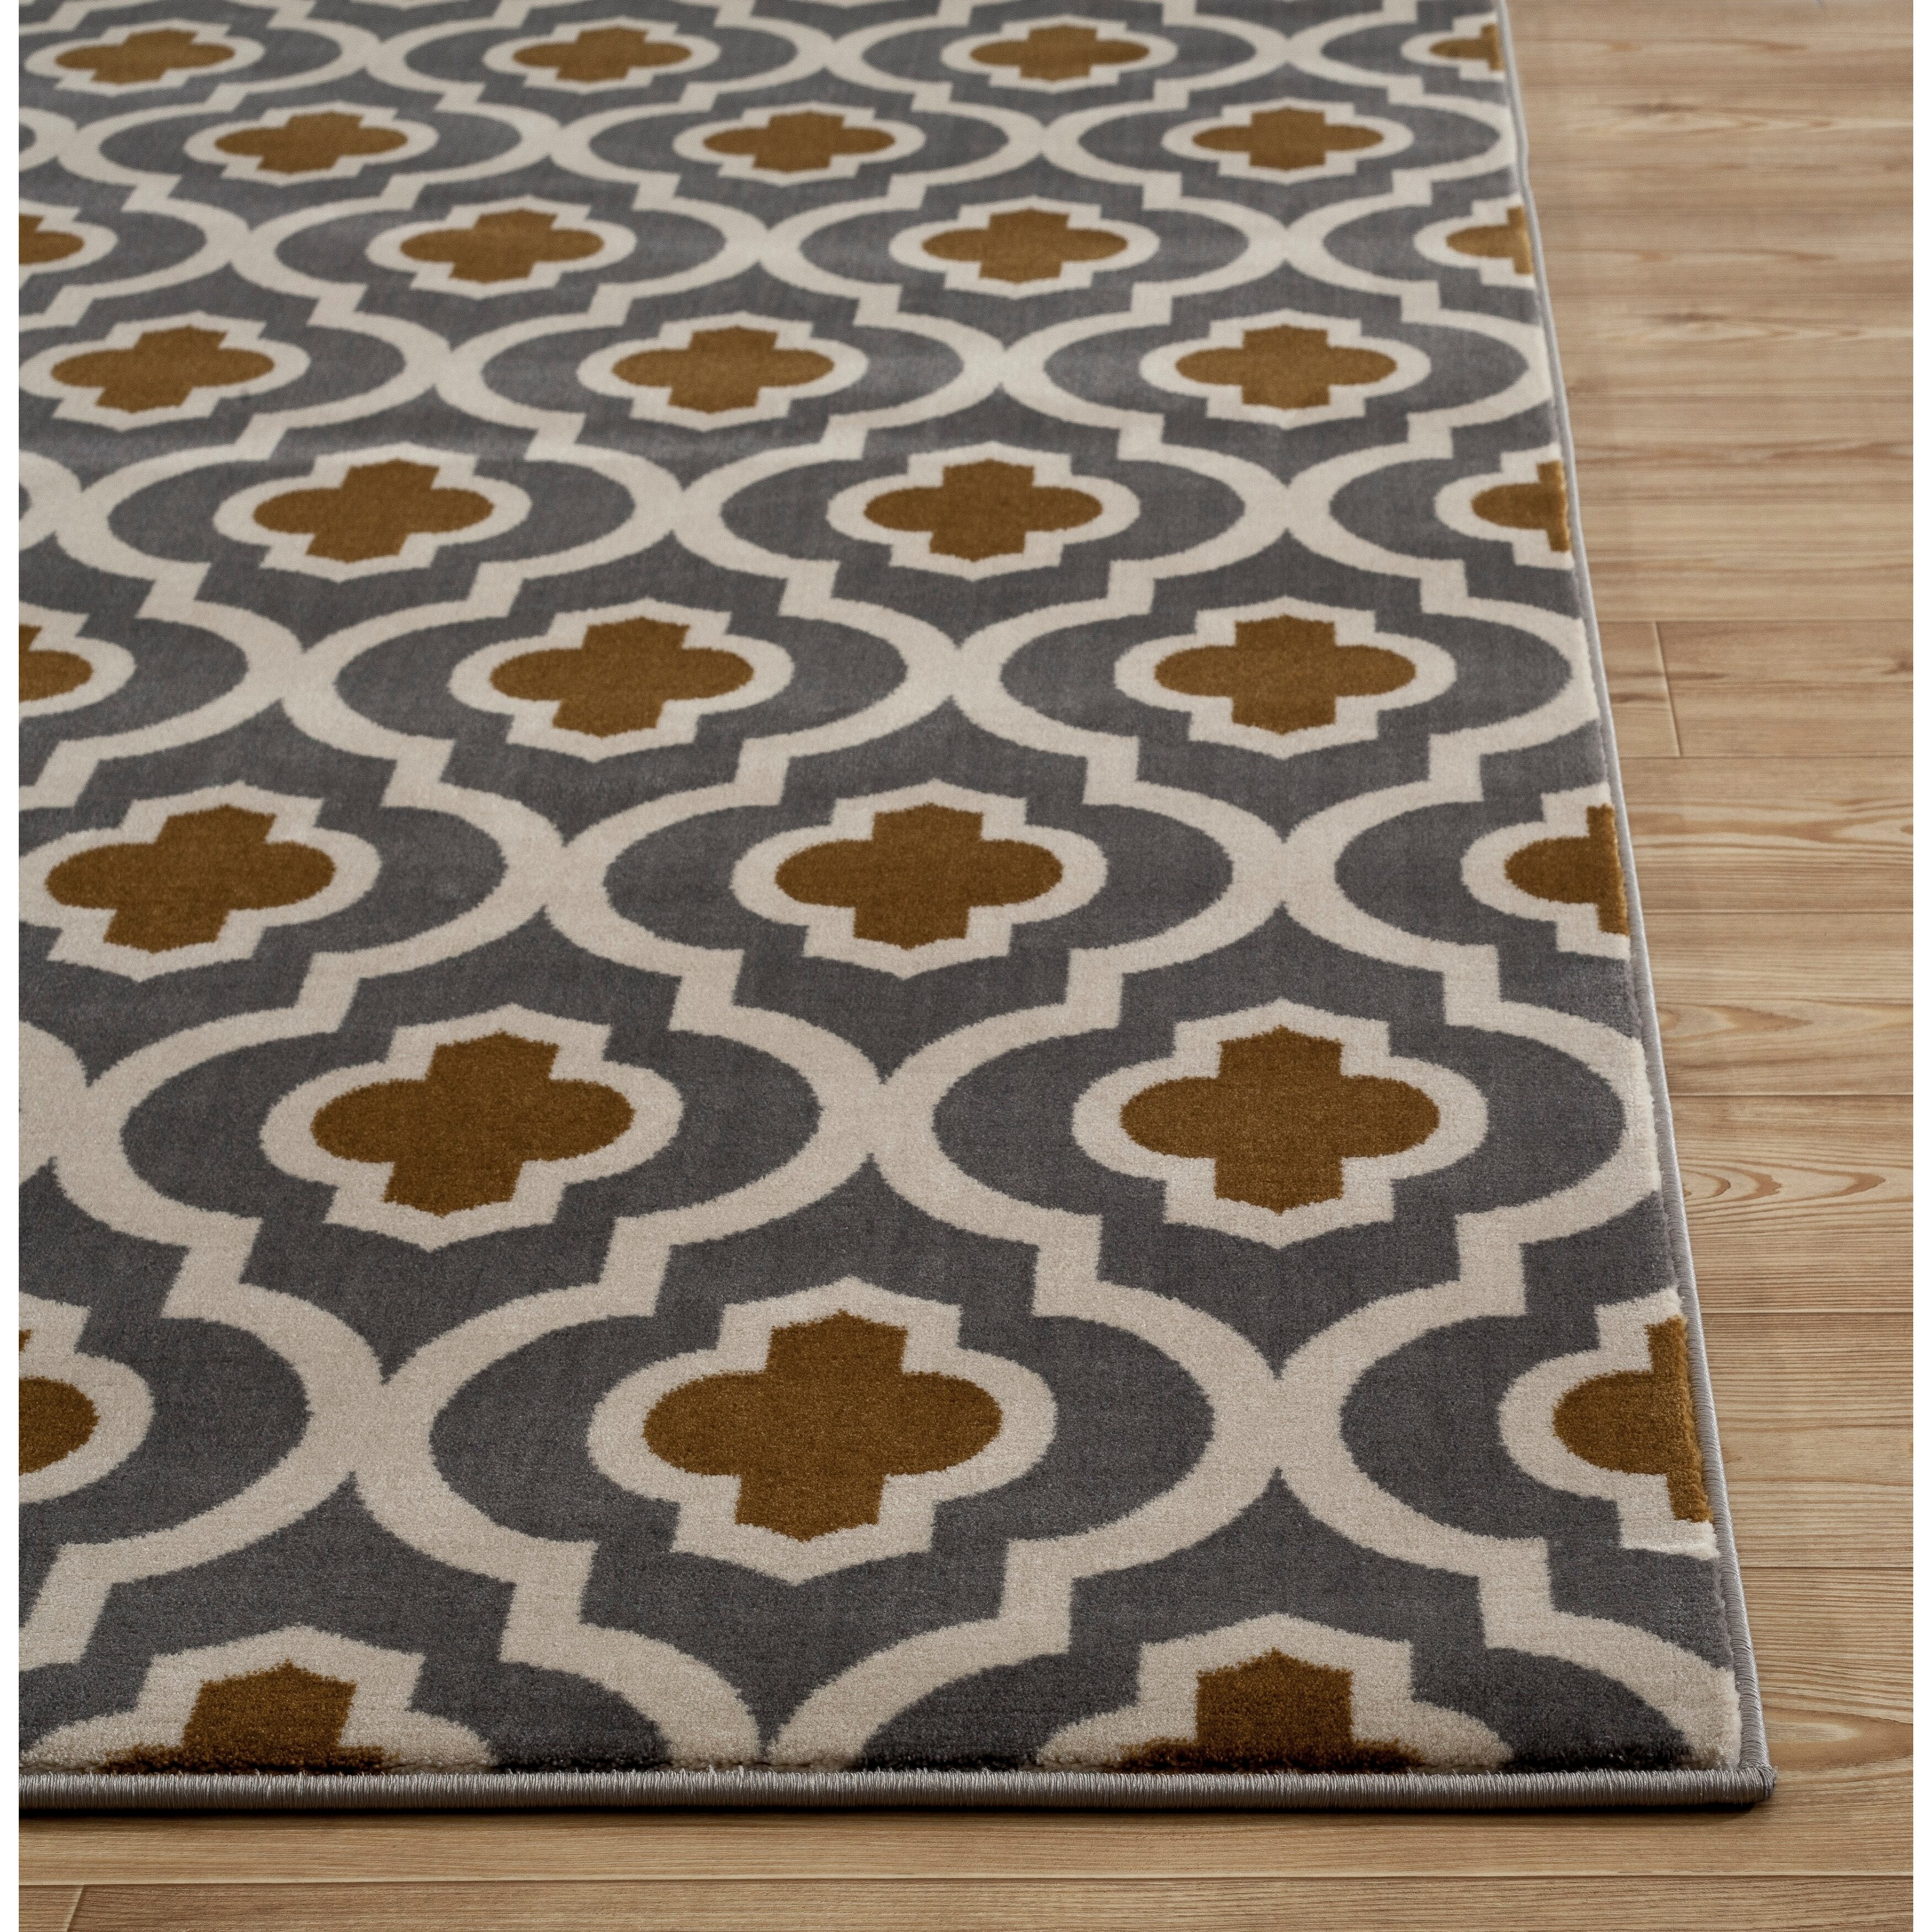 World rug gallery elite soft dark gray yellow area rug for Soft area rugs